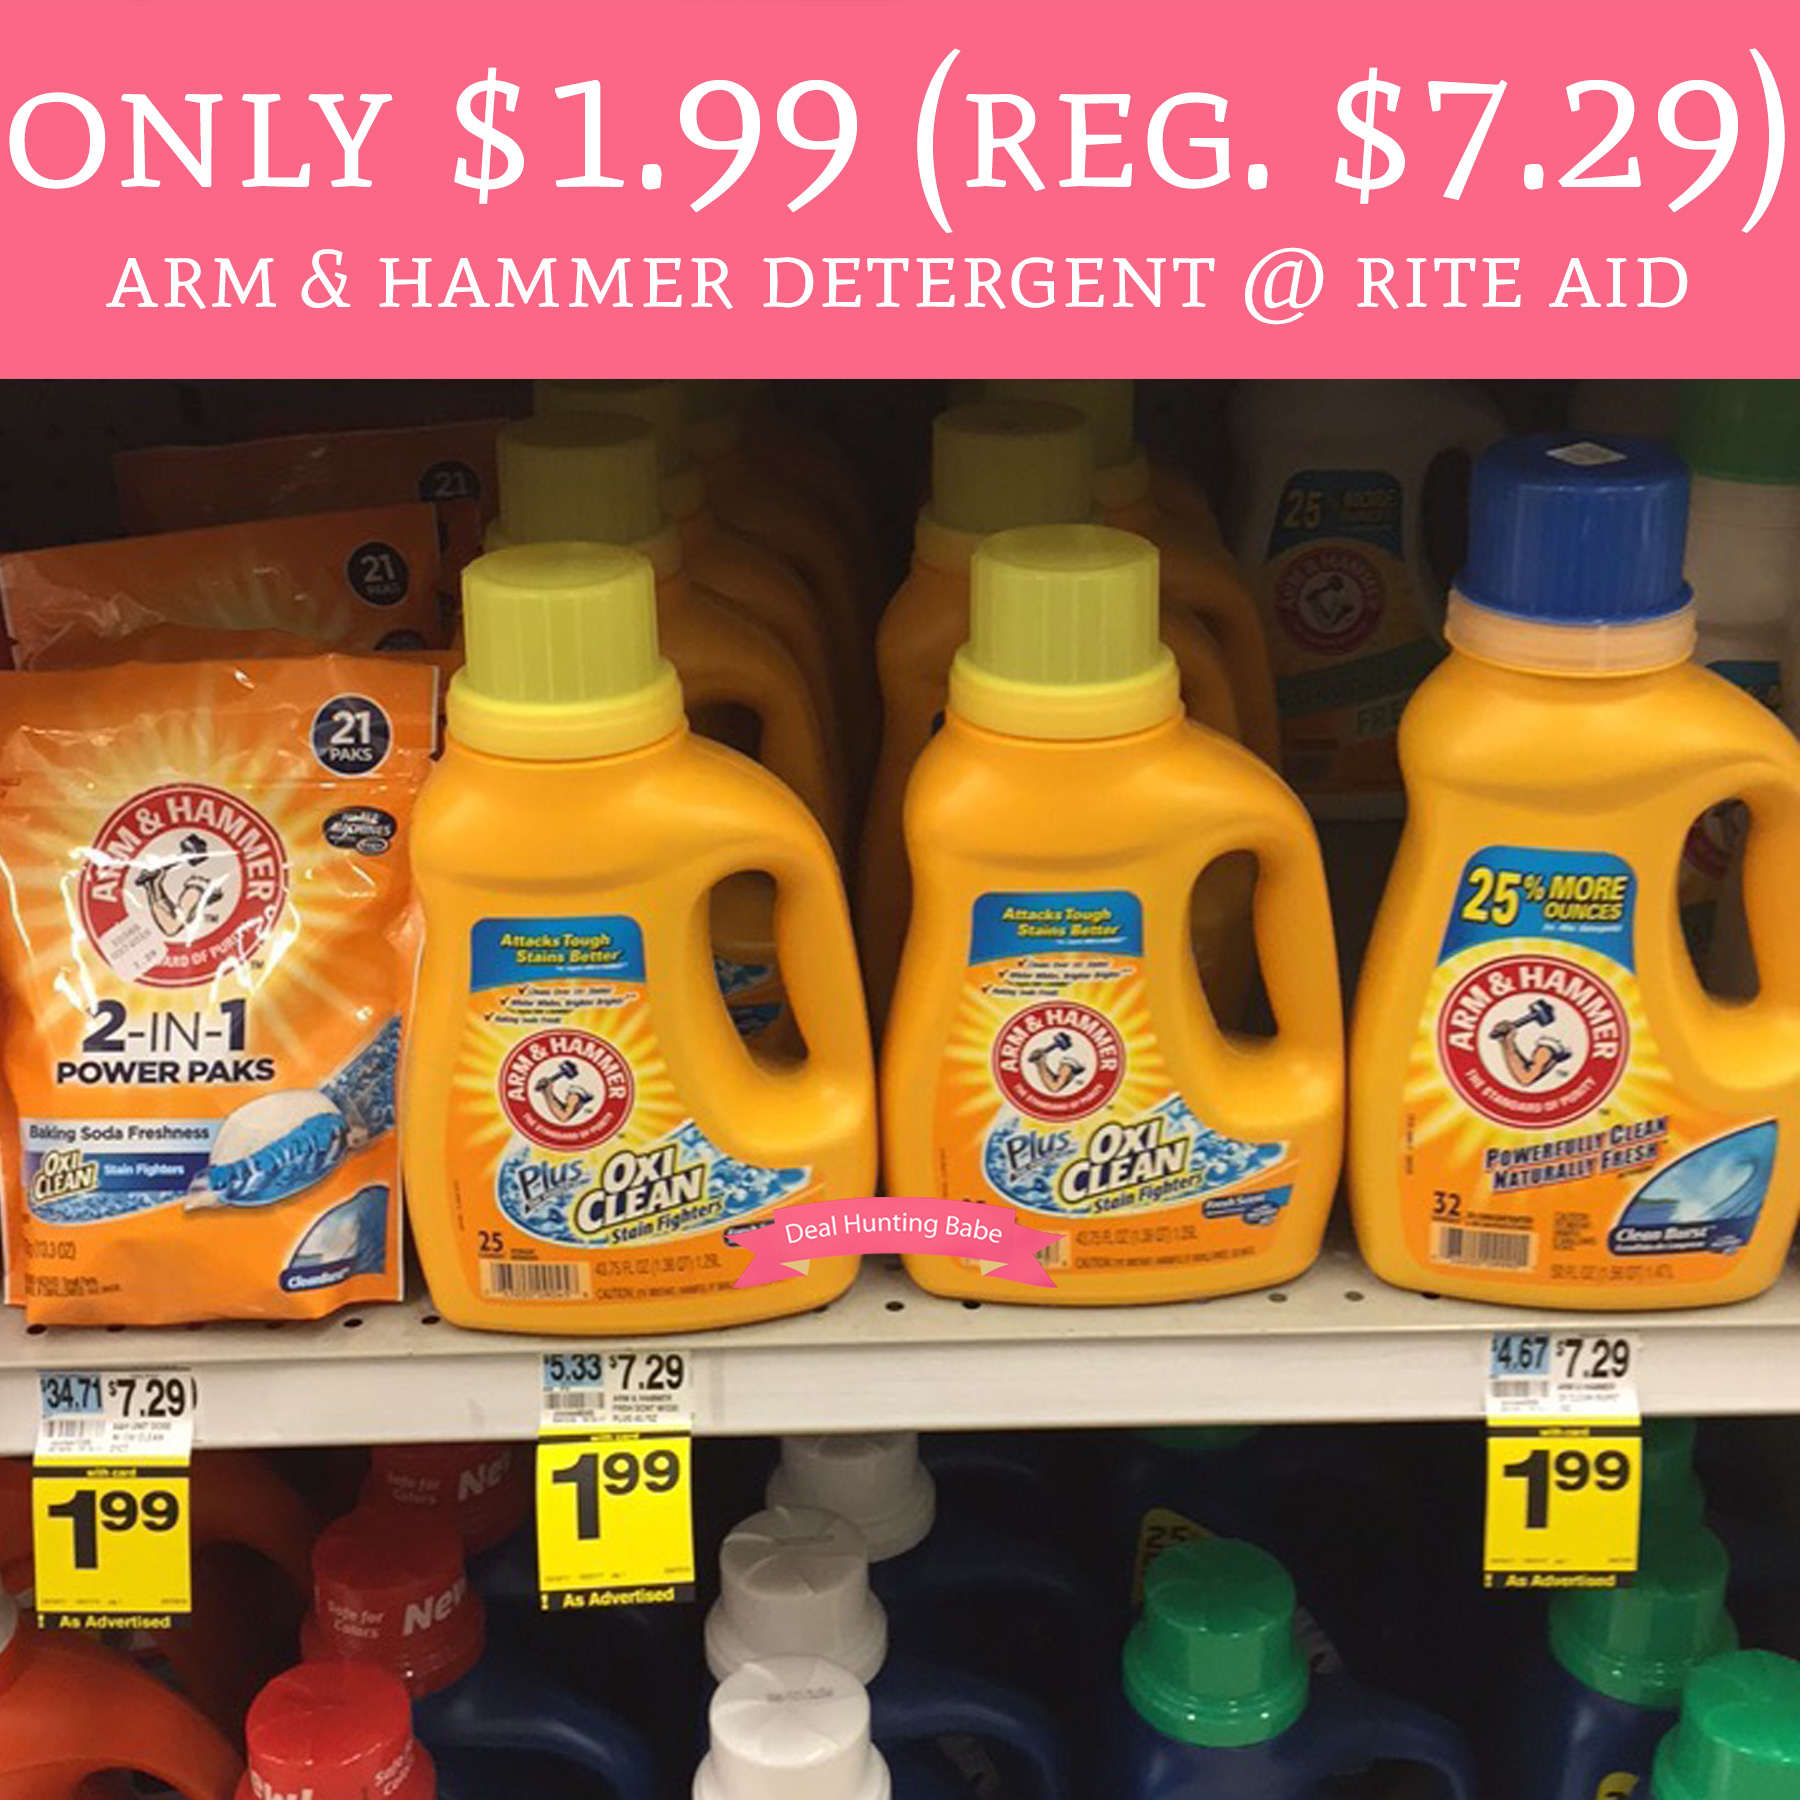 Rite Aid Stock Quote: Only $1.99 (Regular $7.29) Arm & Hammer Detergent @ Rite